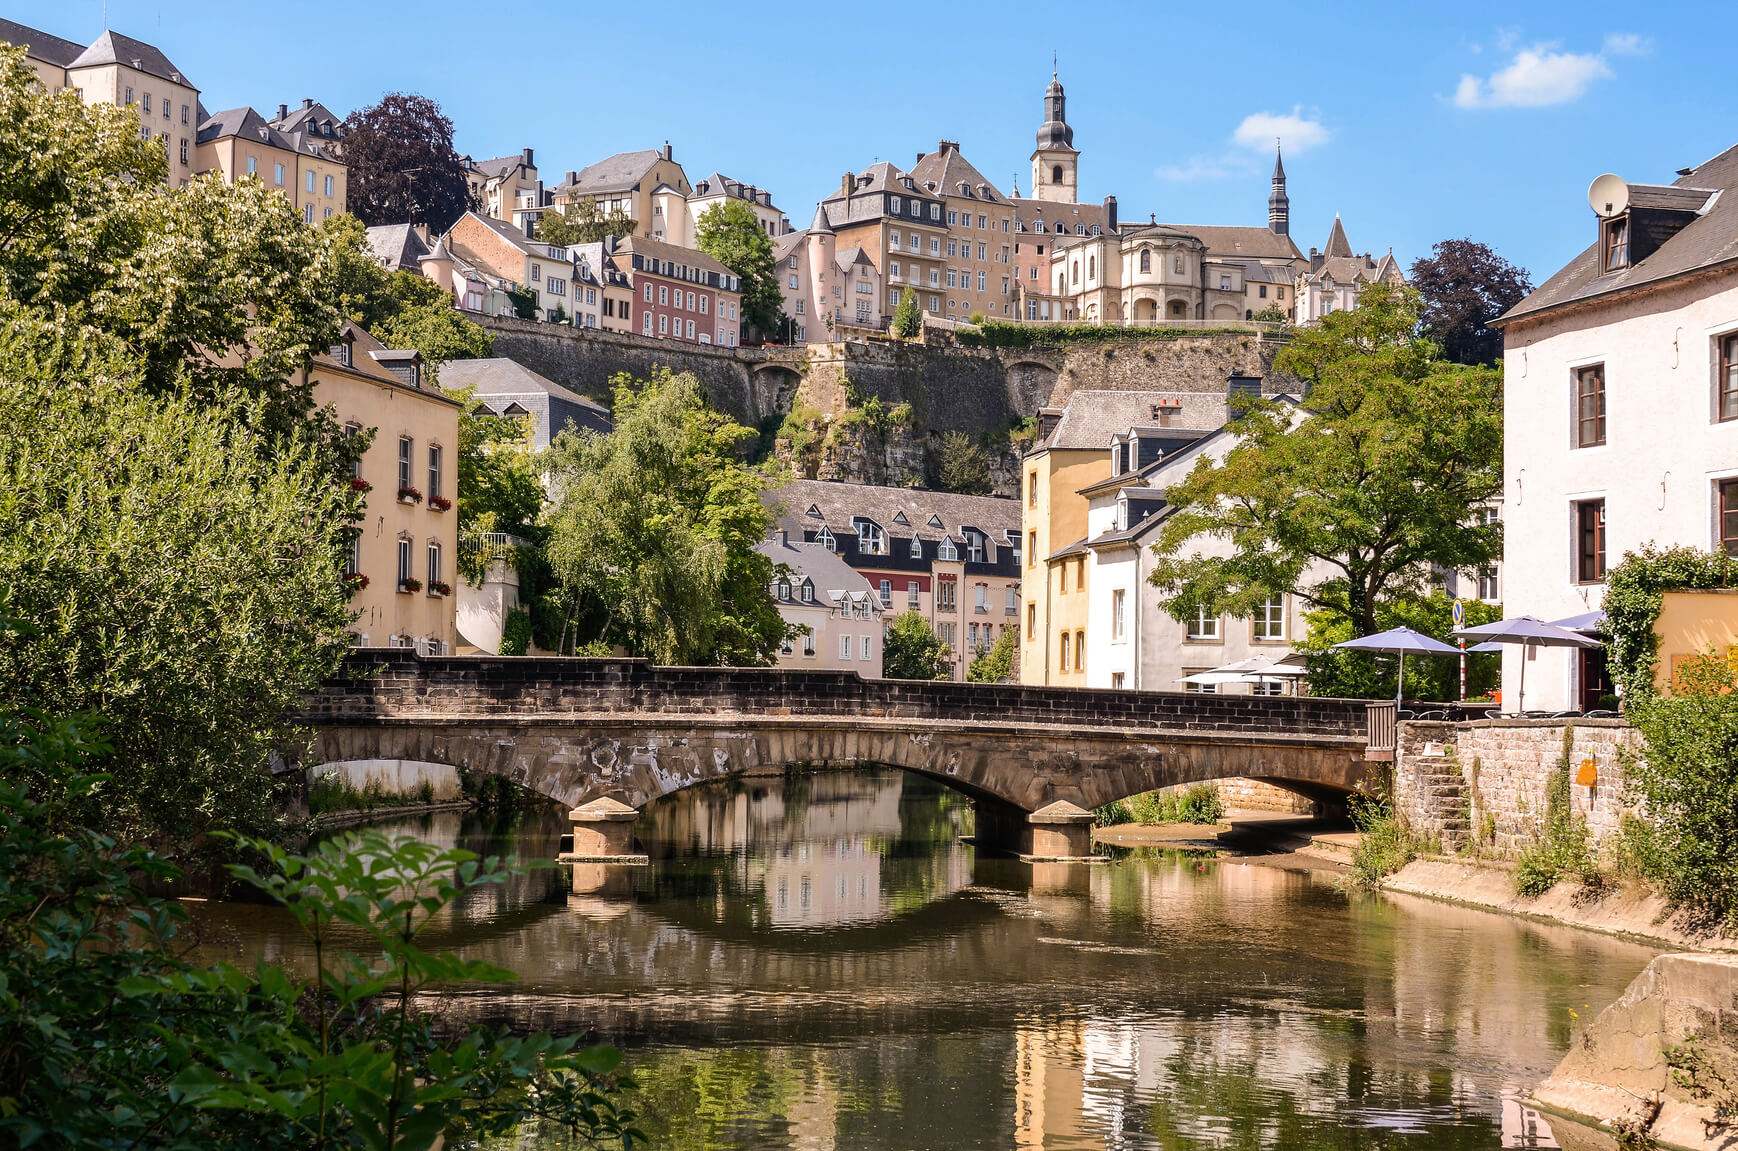 Luxembourg Luxembourg  city photos : Cheap flights from Boston to Luxembourg for only $396 roundtrip with ...